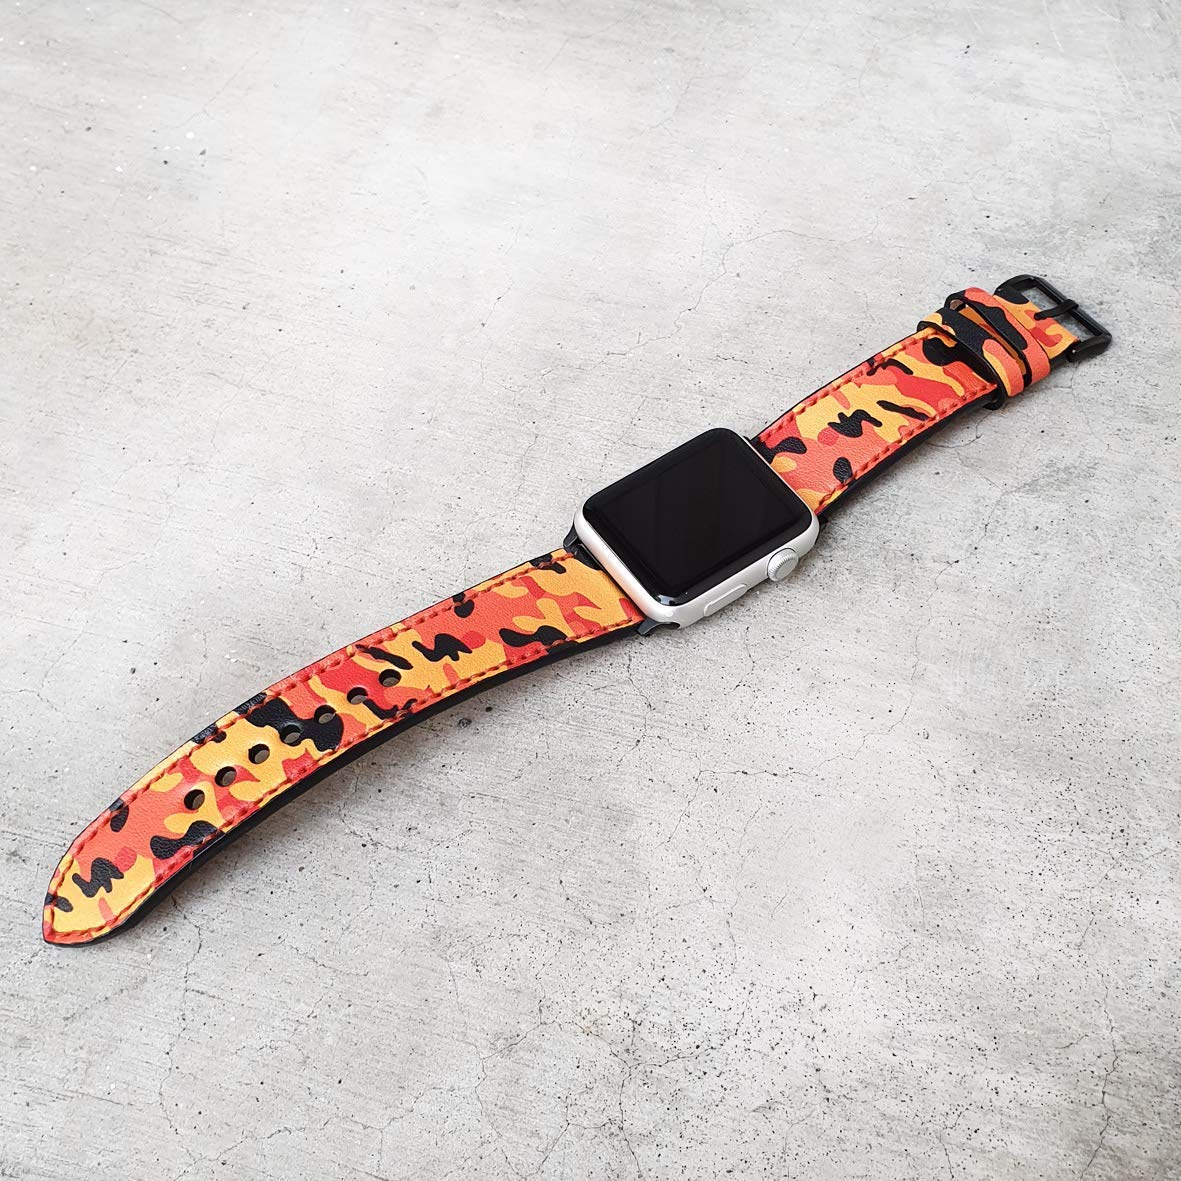 Orange Camo Band Apple Watch Band 38mm 40mm 42mm 44mm,Series 5 Series 4 Series 3 Series 2 Series 1,Hand-Stitched Handmade Apple Watch Leather